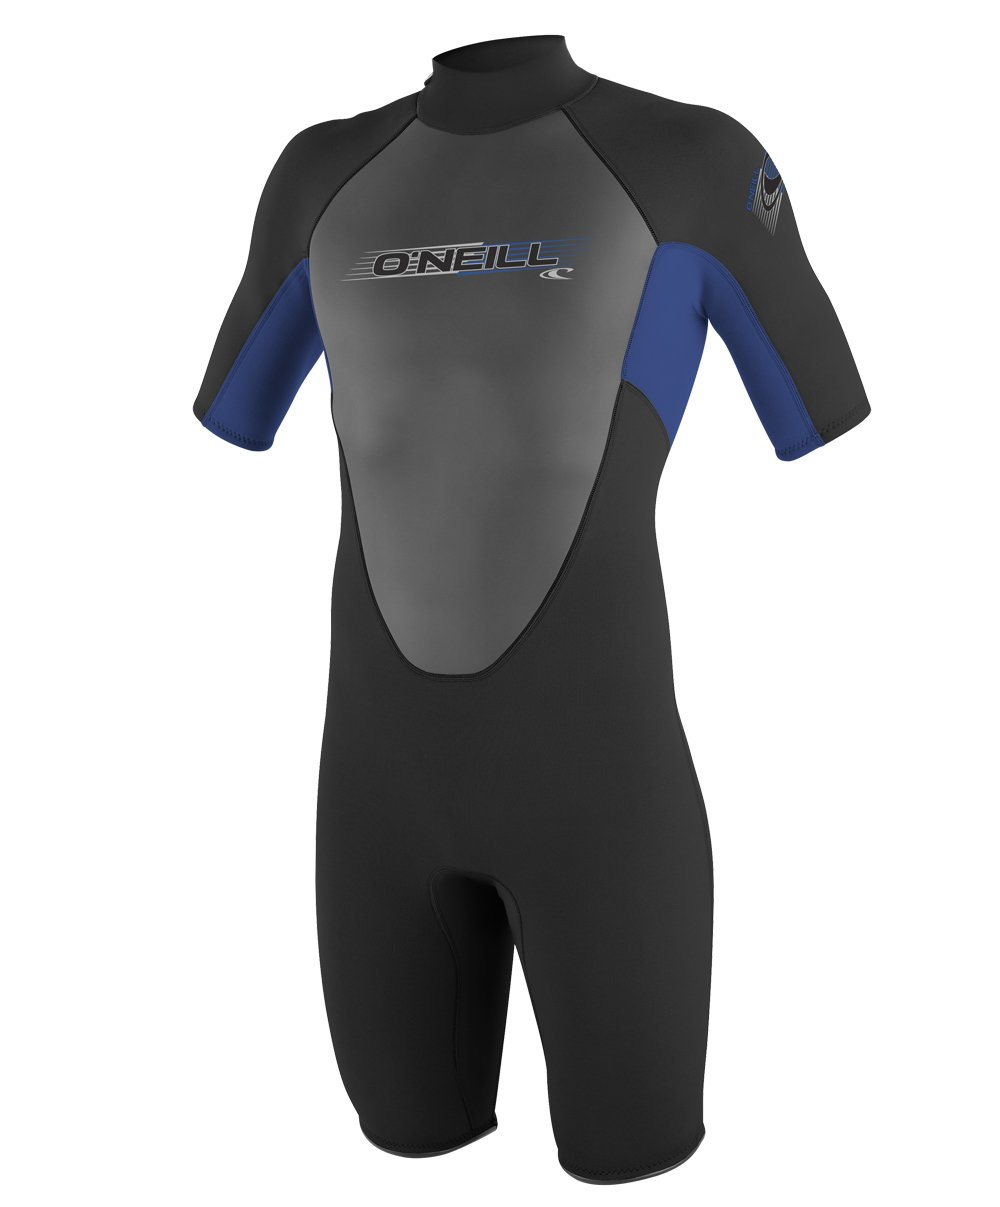 O'Neill Men's Reactor 2mm Back Zip Spring Wetsuit, Black/Pacific/Graphite, Medium